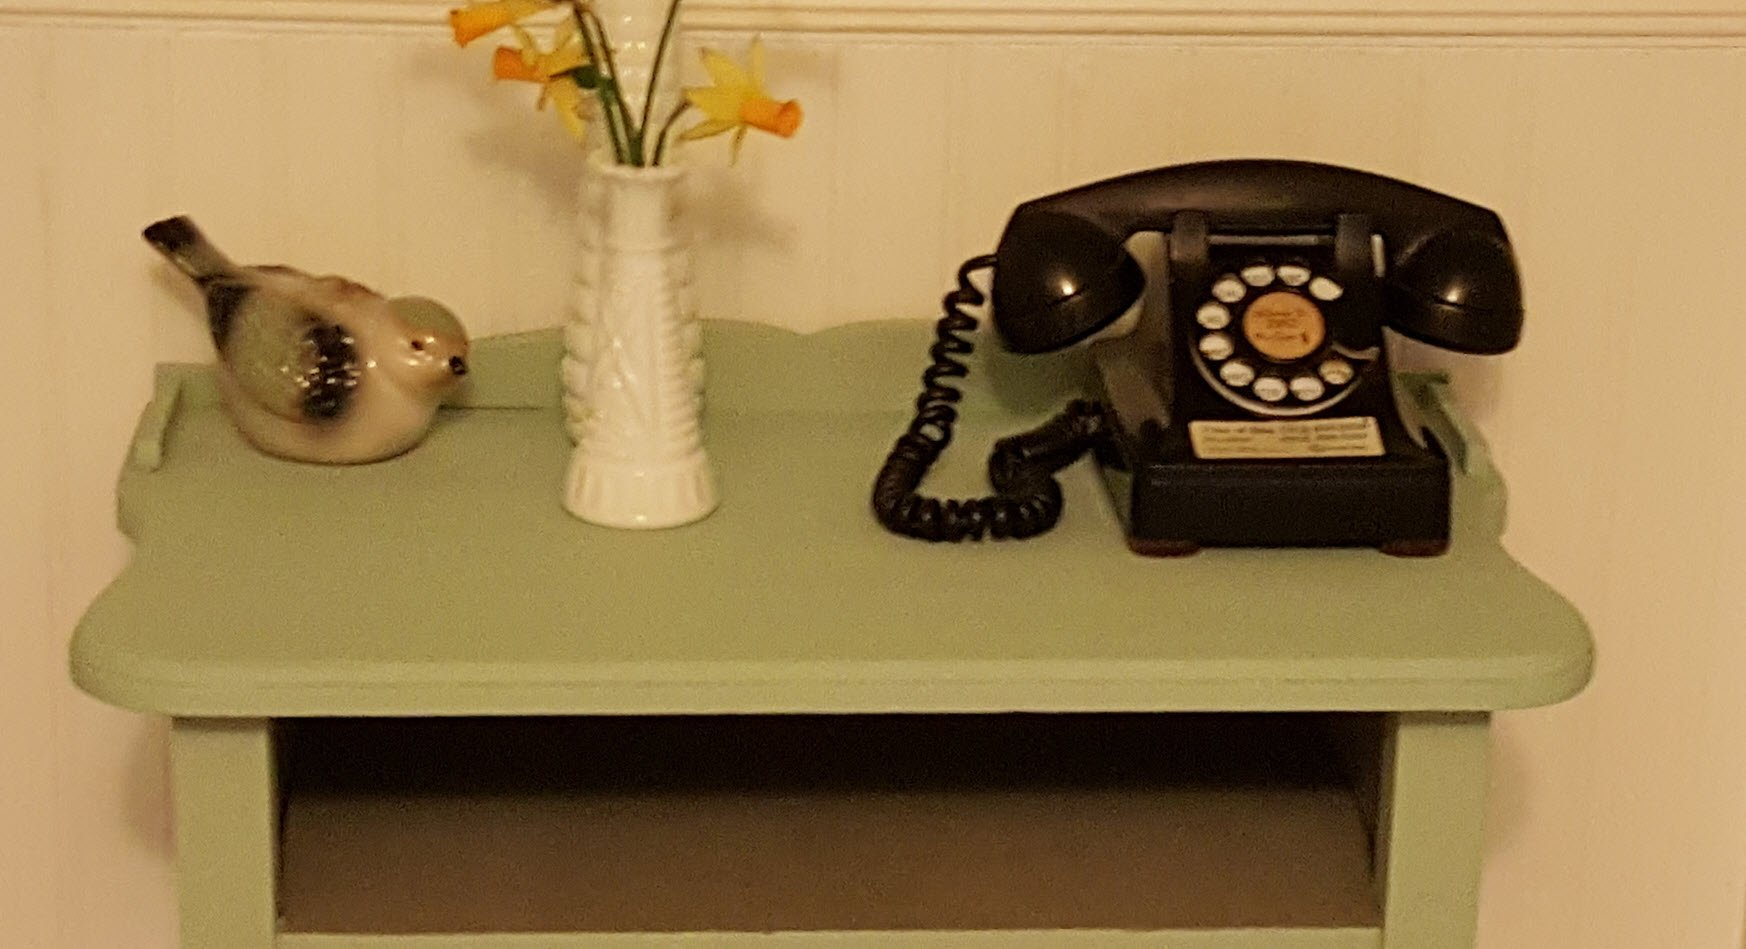 Telephone table with old phone is an antique table now painted in beautiful blue